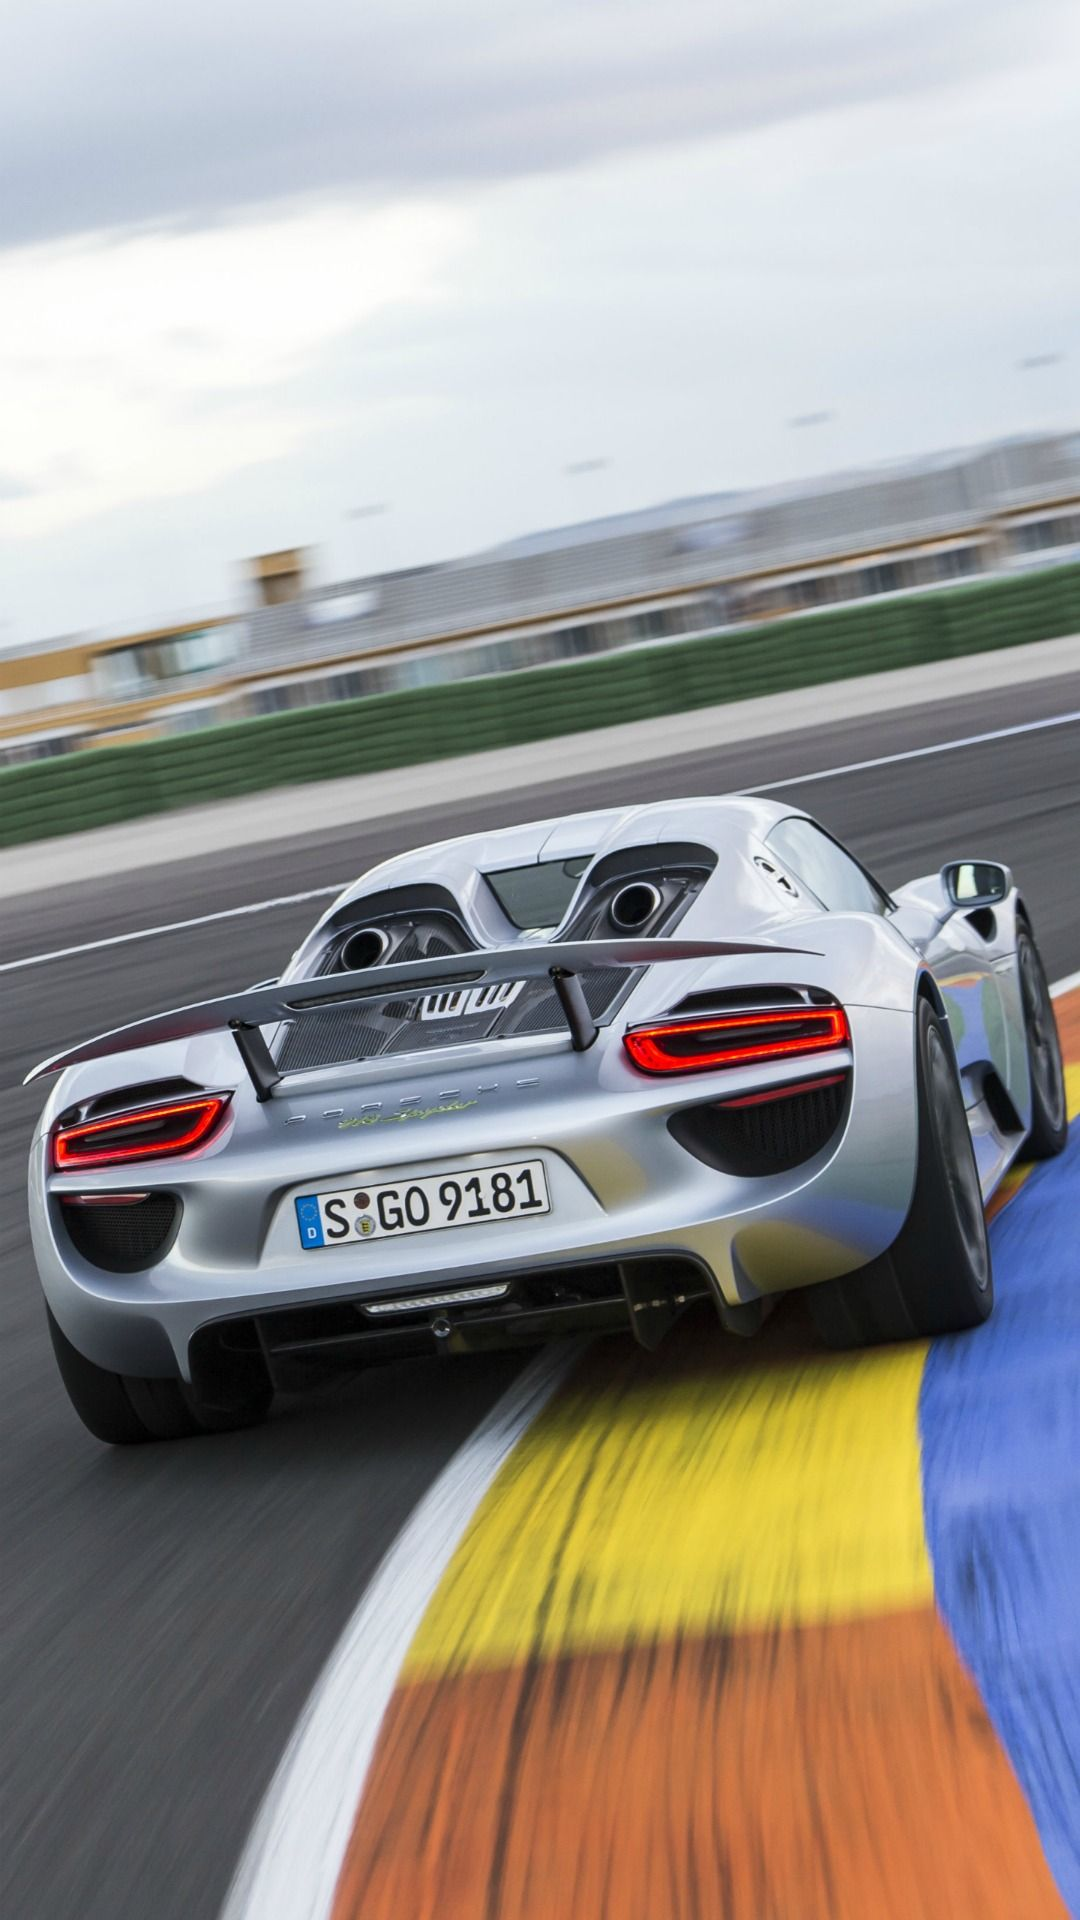 b26434c273eb76eb60a2c67741619202 Fabulous How Much Does the Porsche 918 Spyder Concept Cost In Real Racing 3 Cars Trend